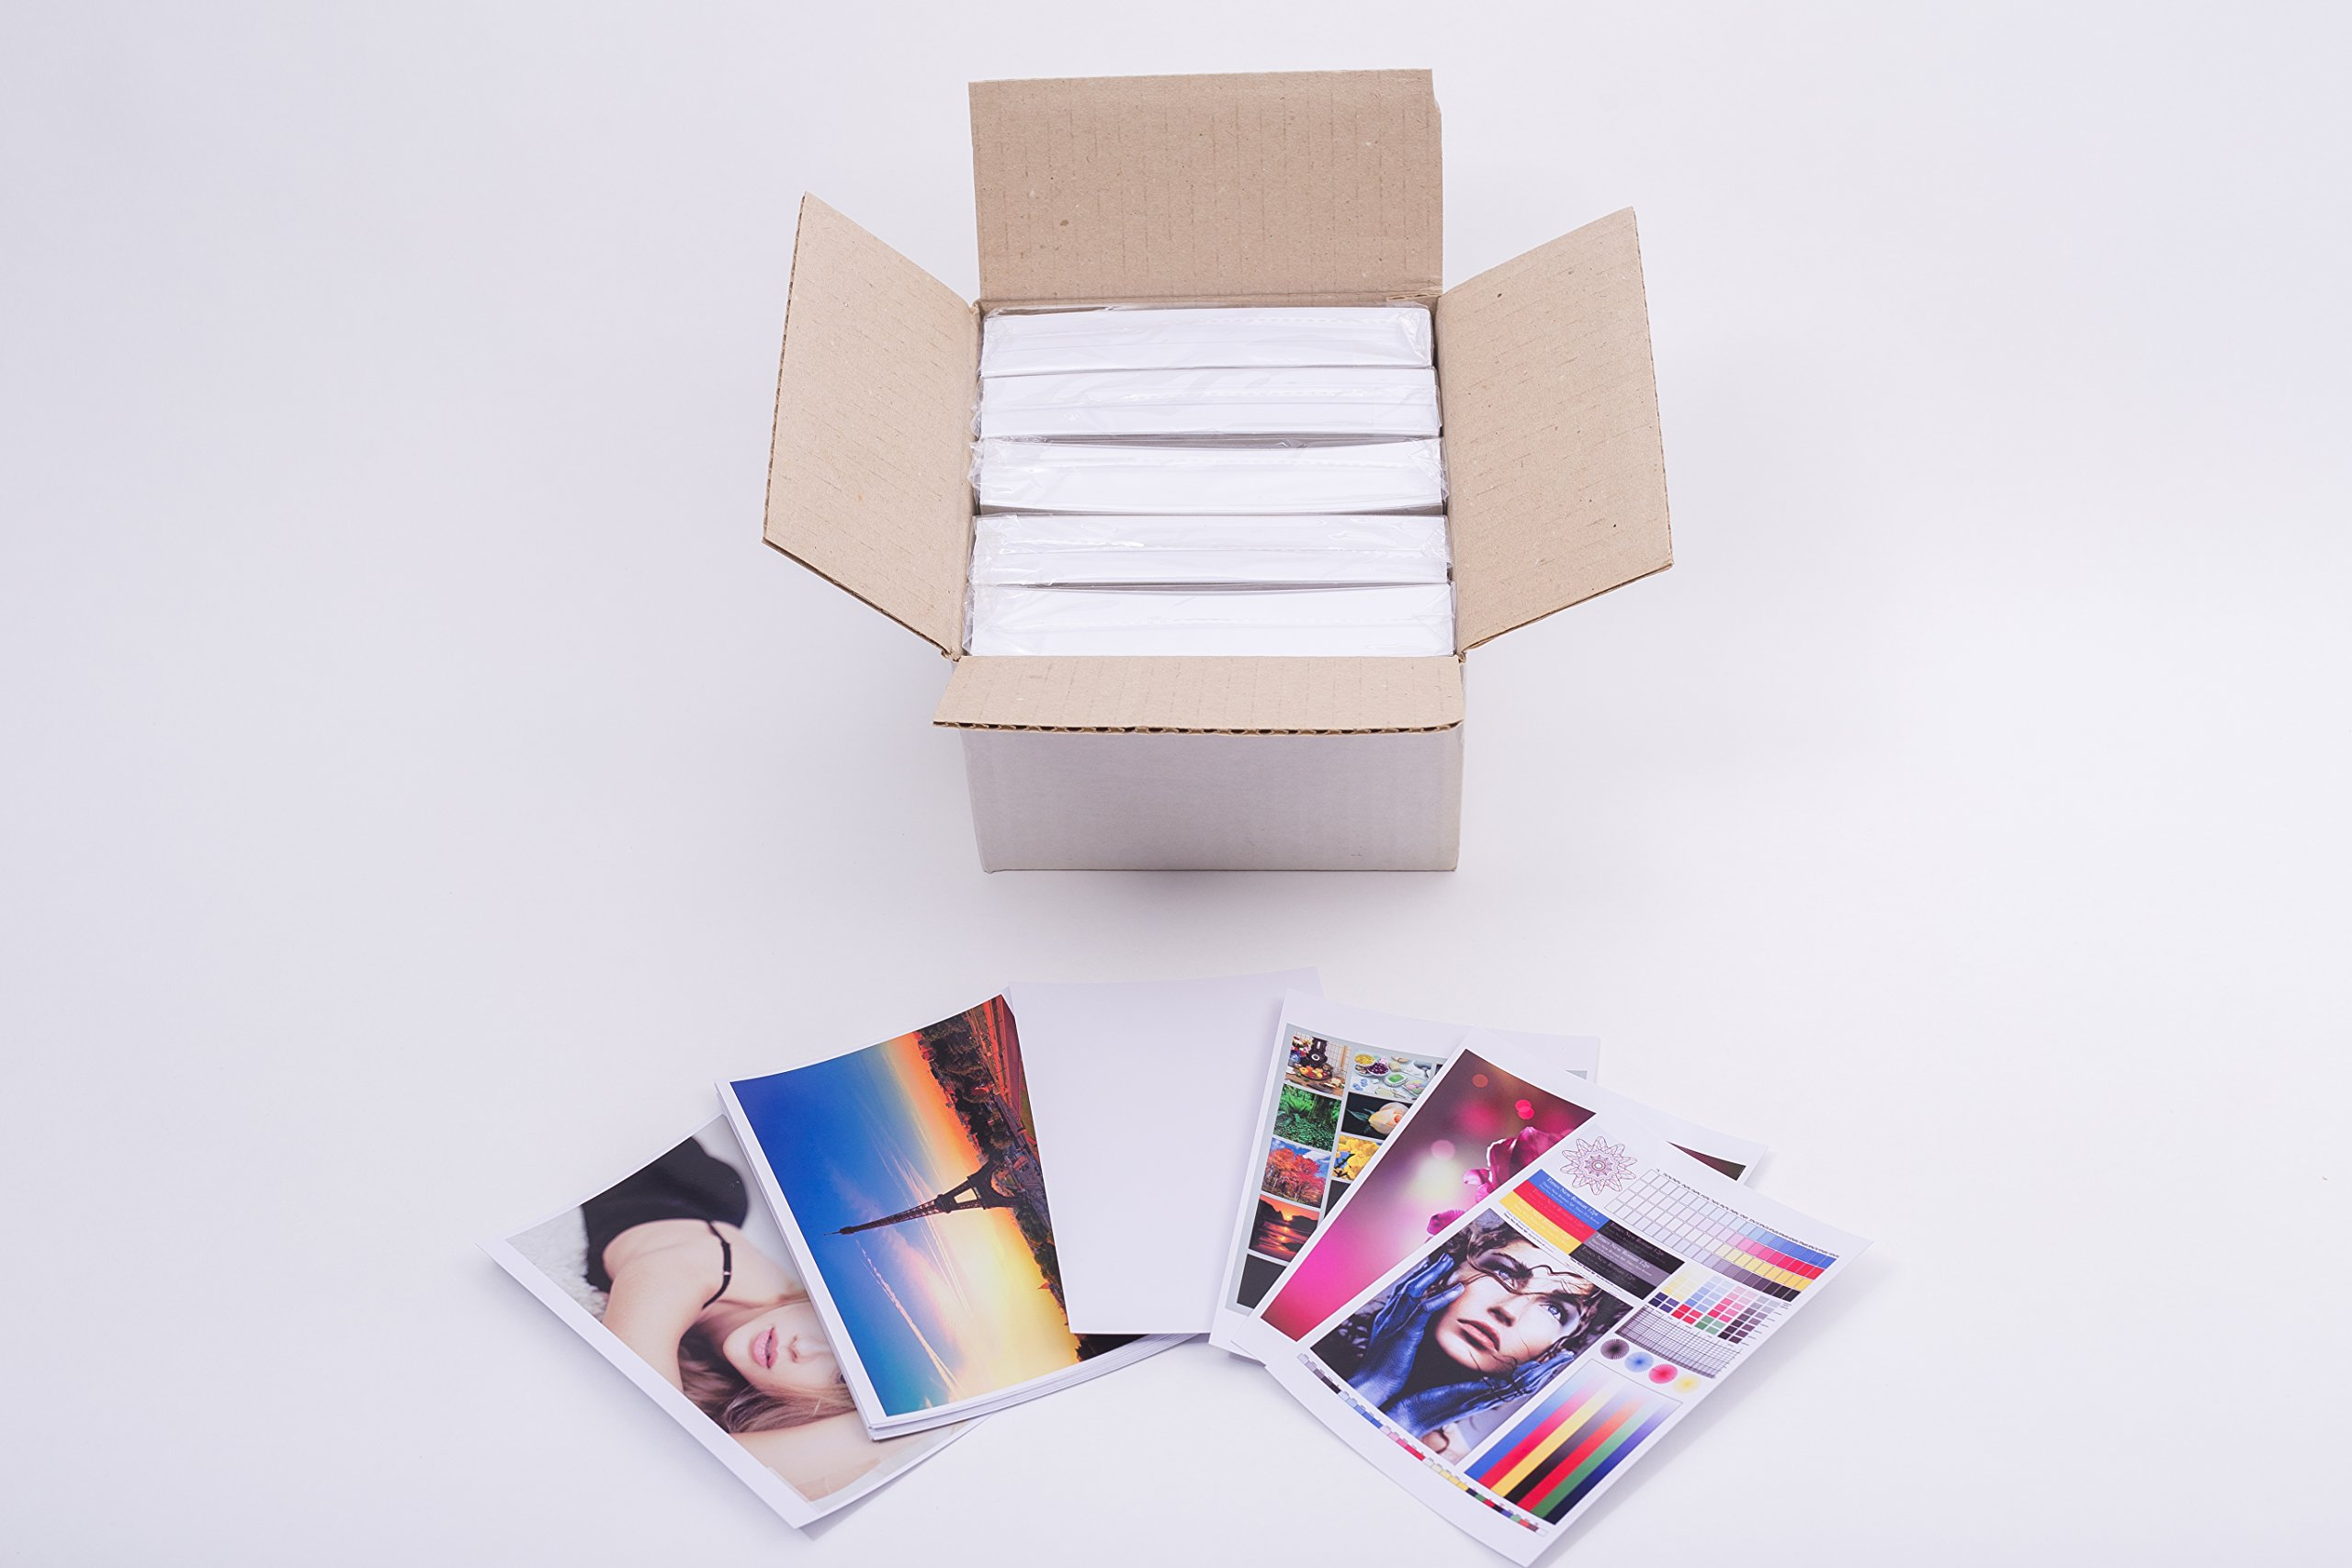 Matte photopaper 500 sheets ECO pack for inkjet printers 4x6 inches 9,5 mil, 230gsm with backprint